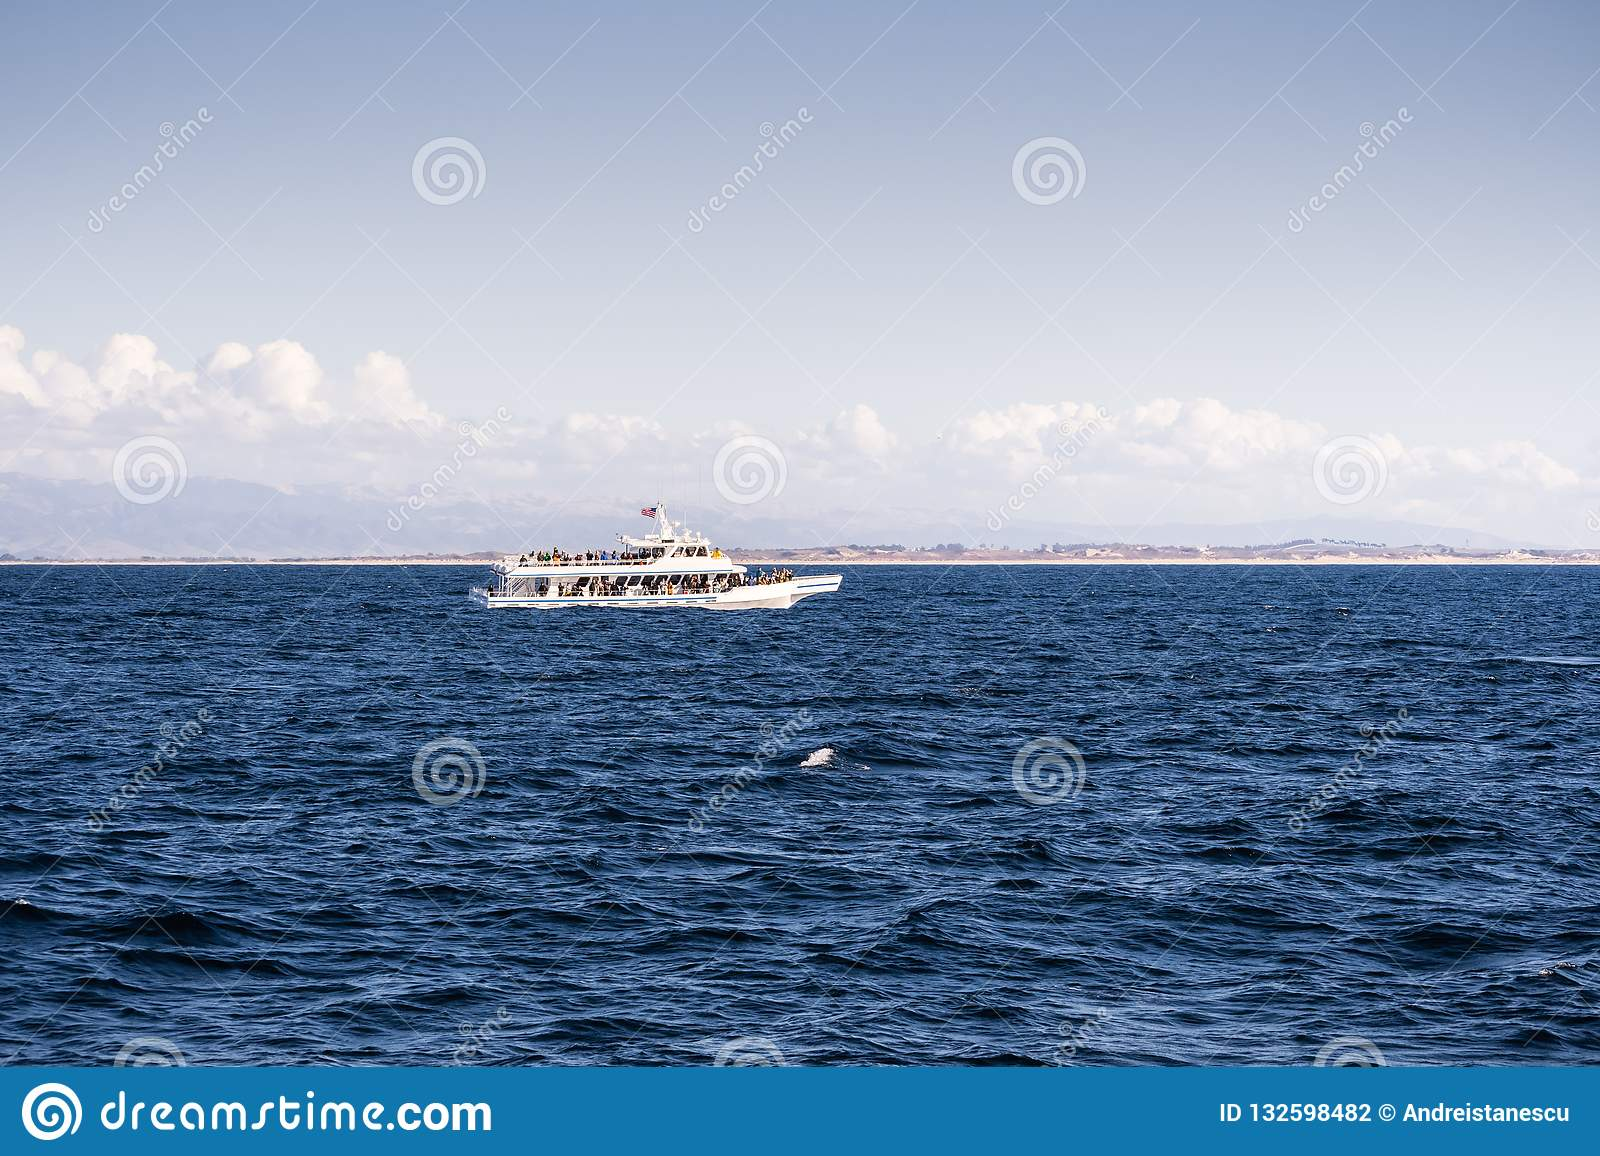 Whale watching cruise ship in Monterey bay, Pacific Ocean coast